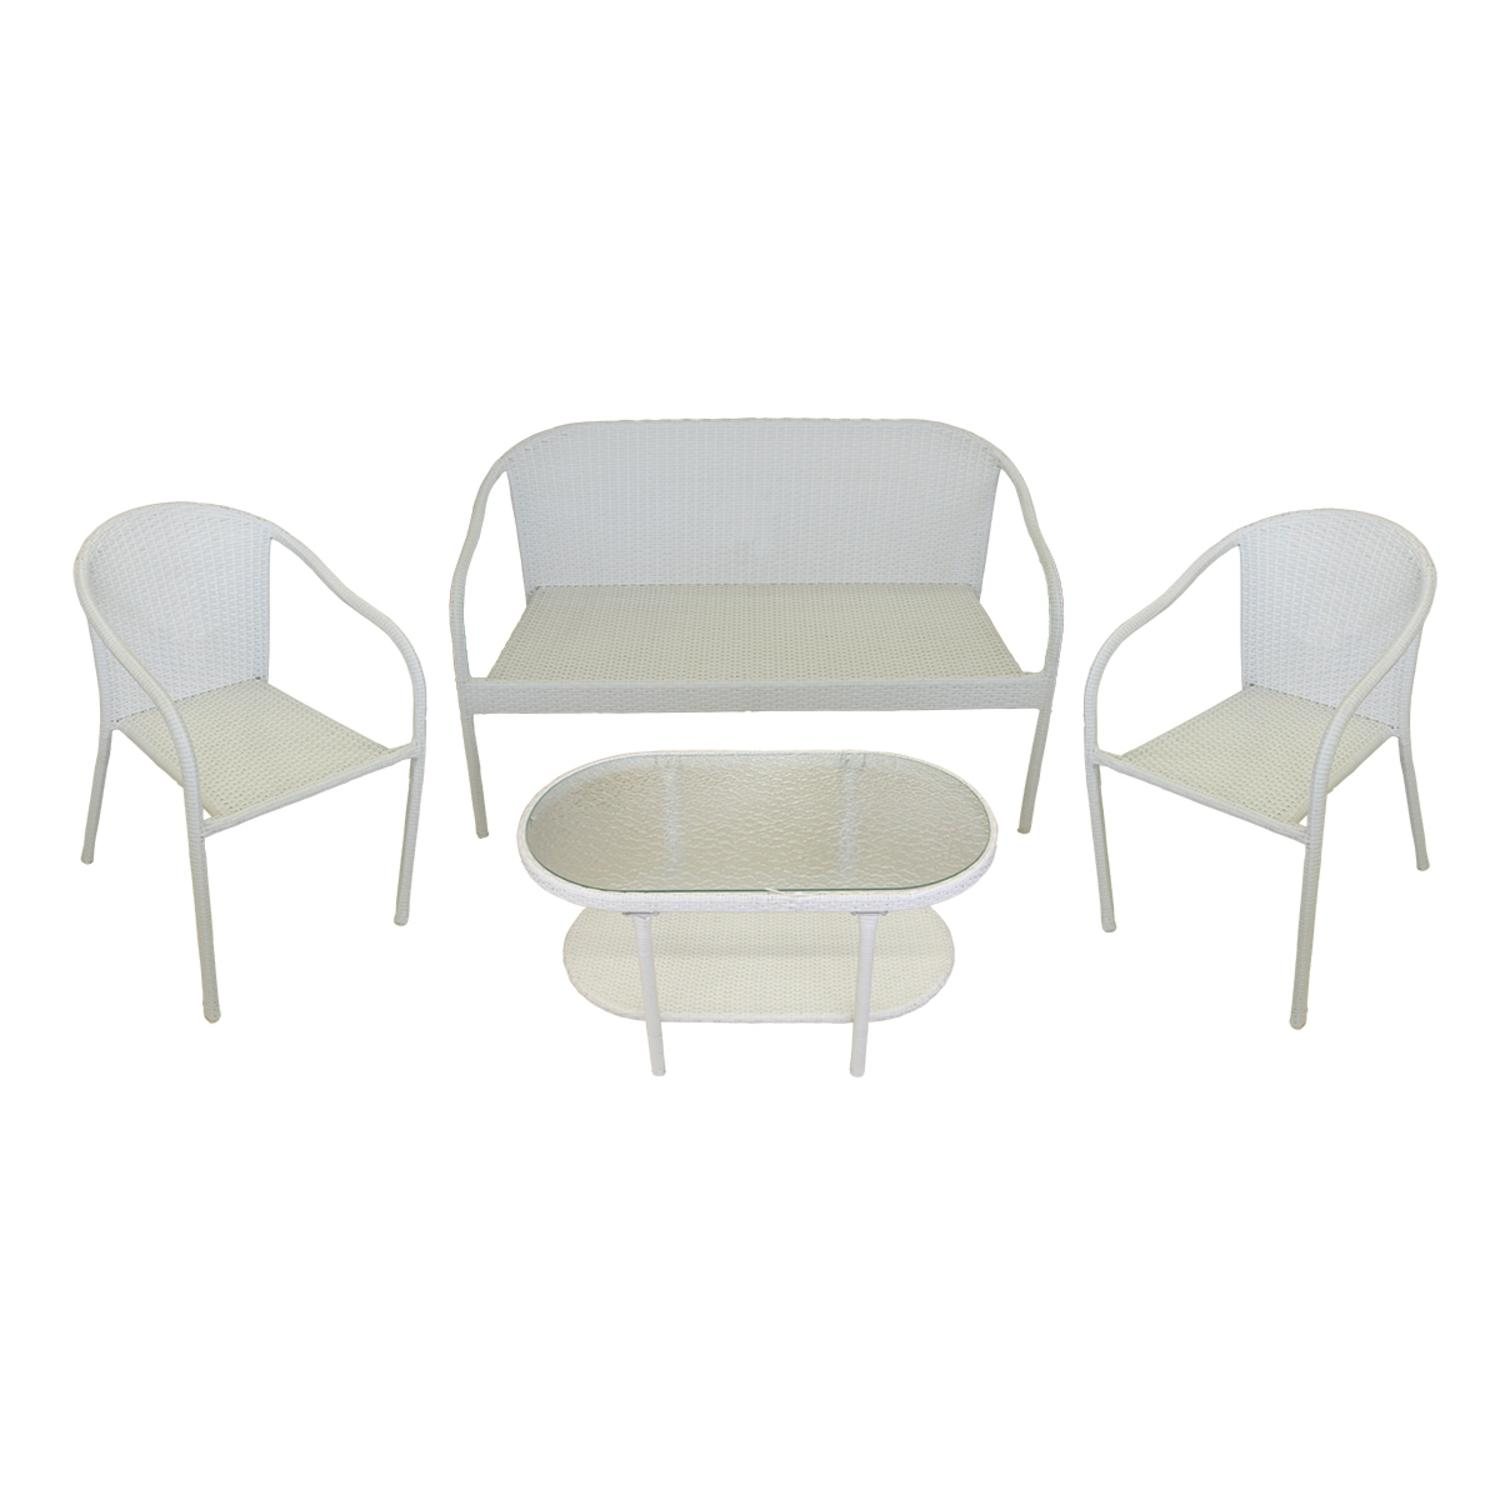 4 Piece White Resin Wicker Patio Furniture Set Loveseat